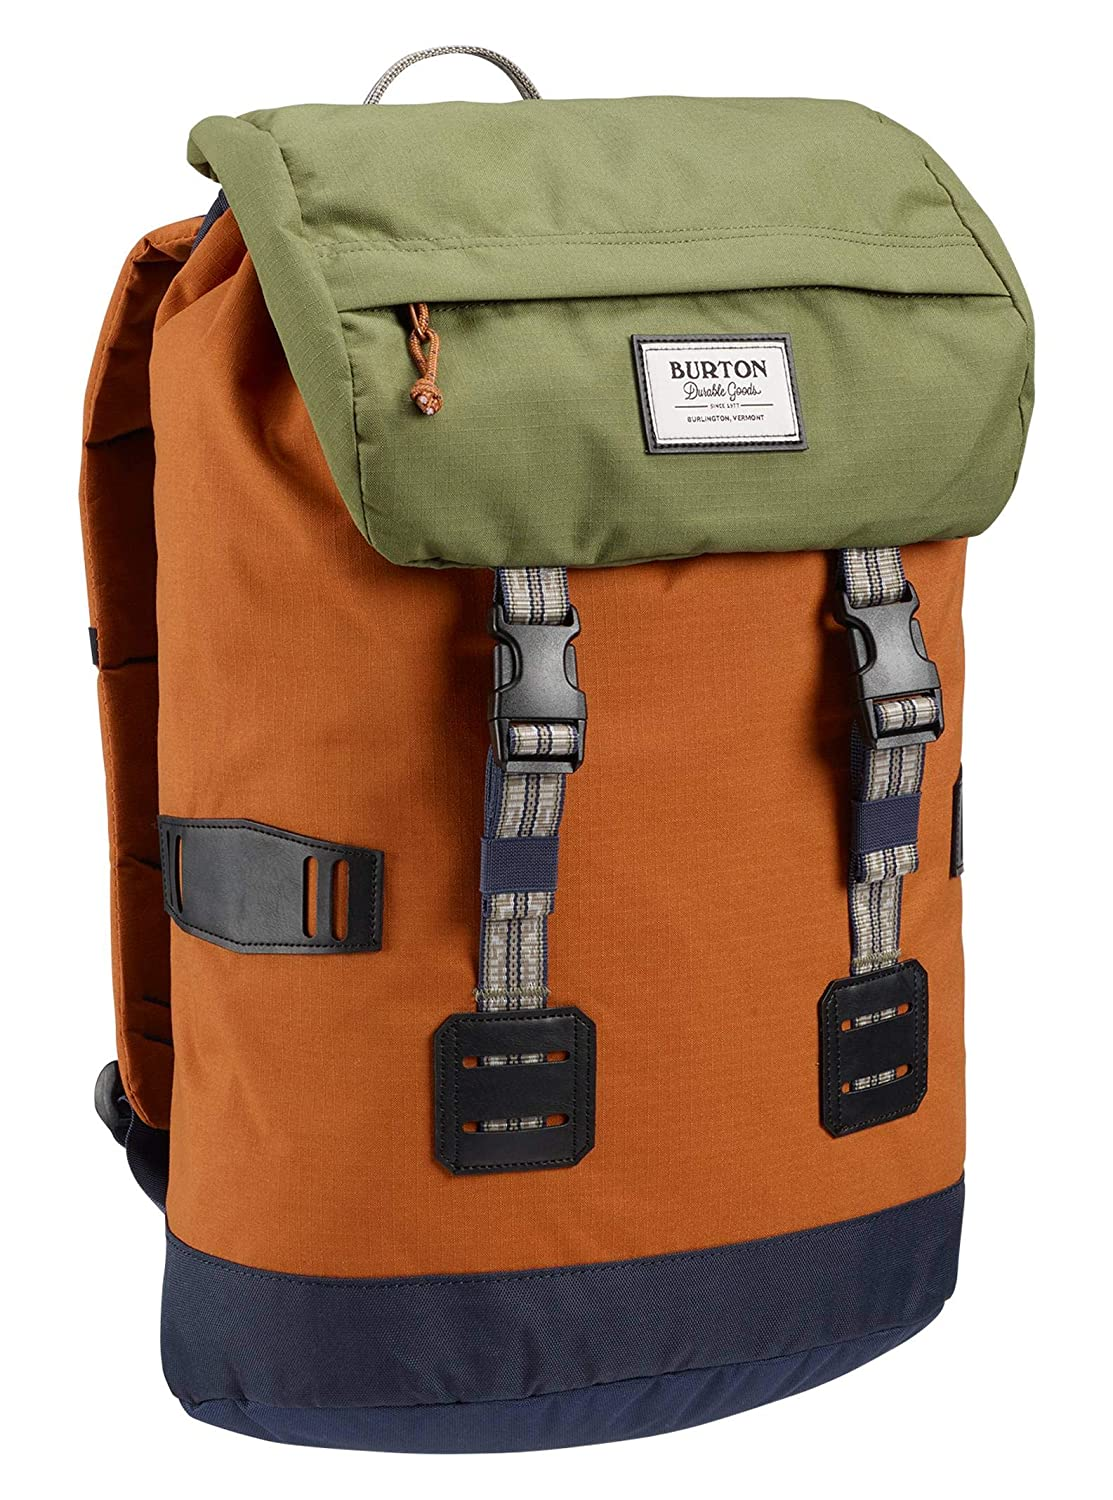 214c878819 Amazon.com: Burton Tinder Backpack, Adobe Ripstop, One Size: Sports &  Outdoors